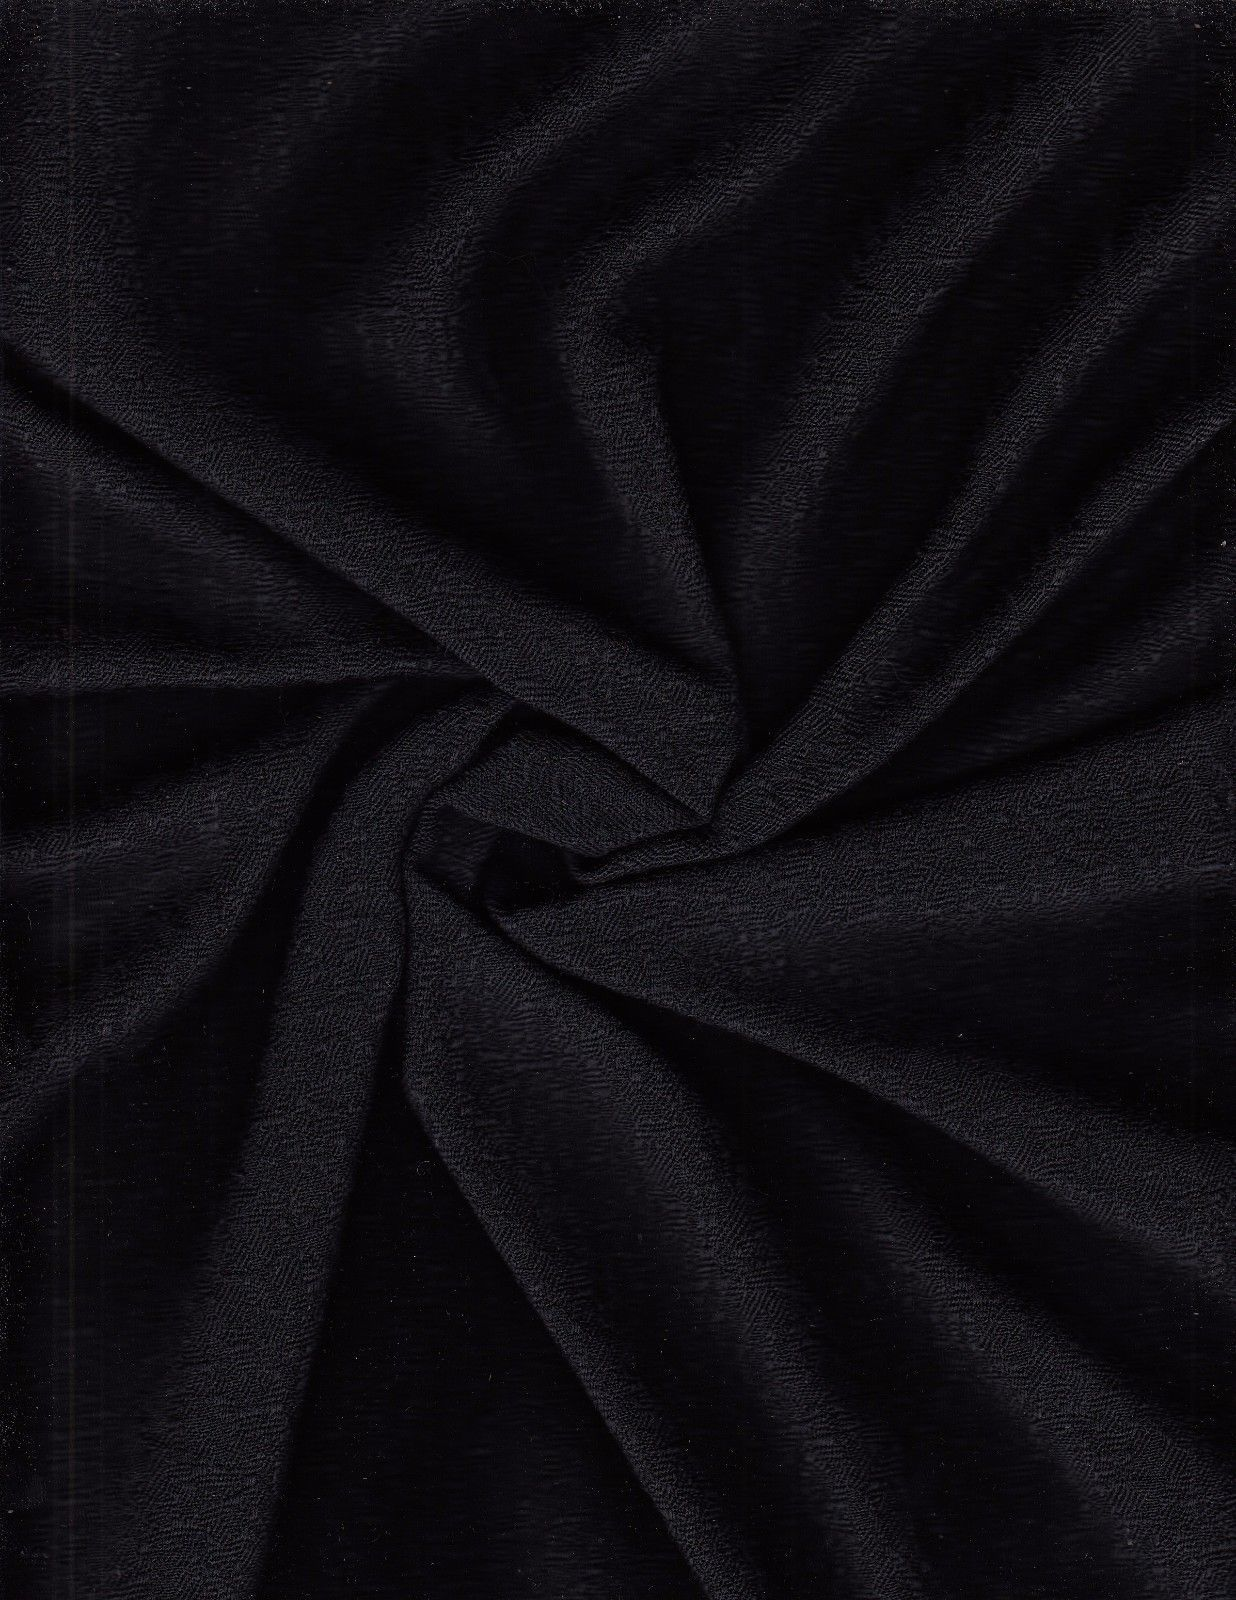 14yds Geiger Upholstery Fabric Wool Texture Terrain Night Sky Black CA-c14